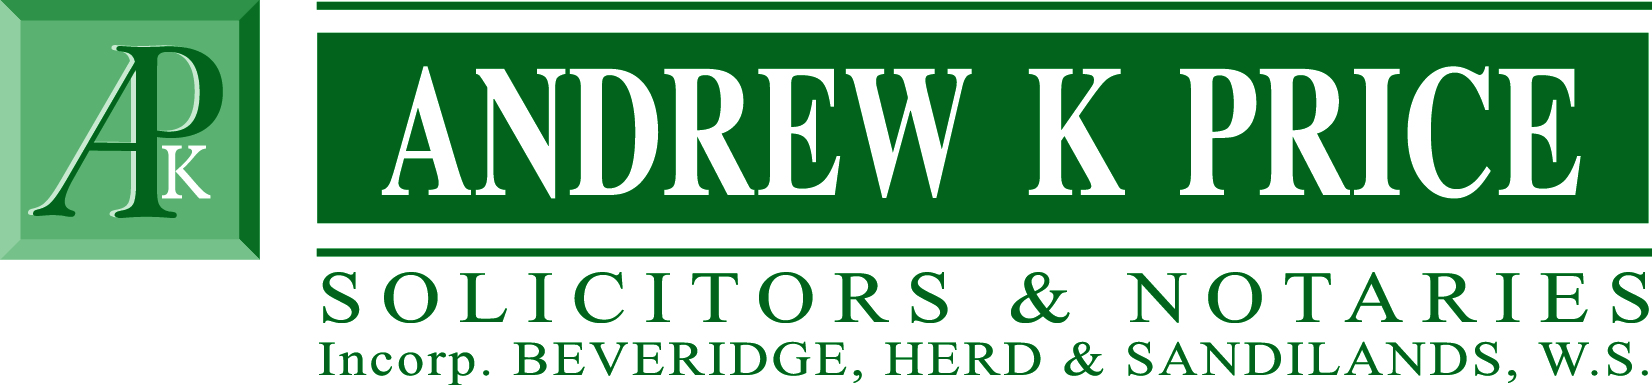 Andrew K Price Solicitors